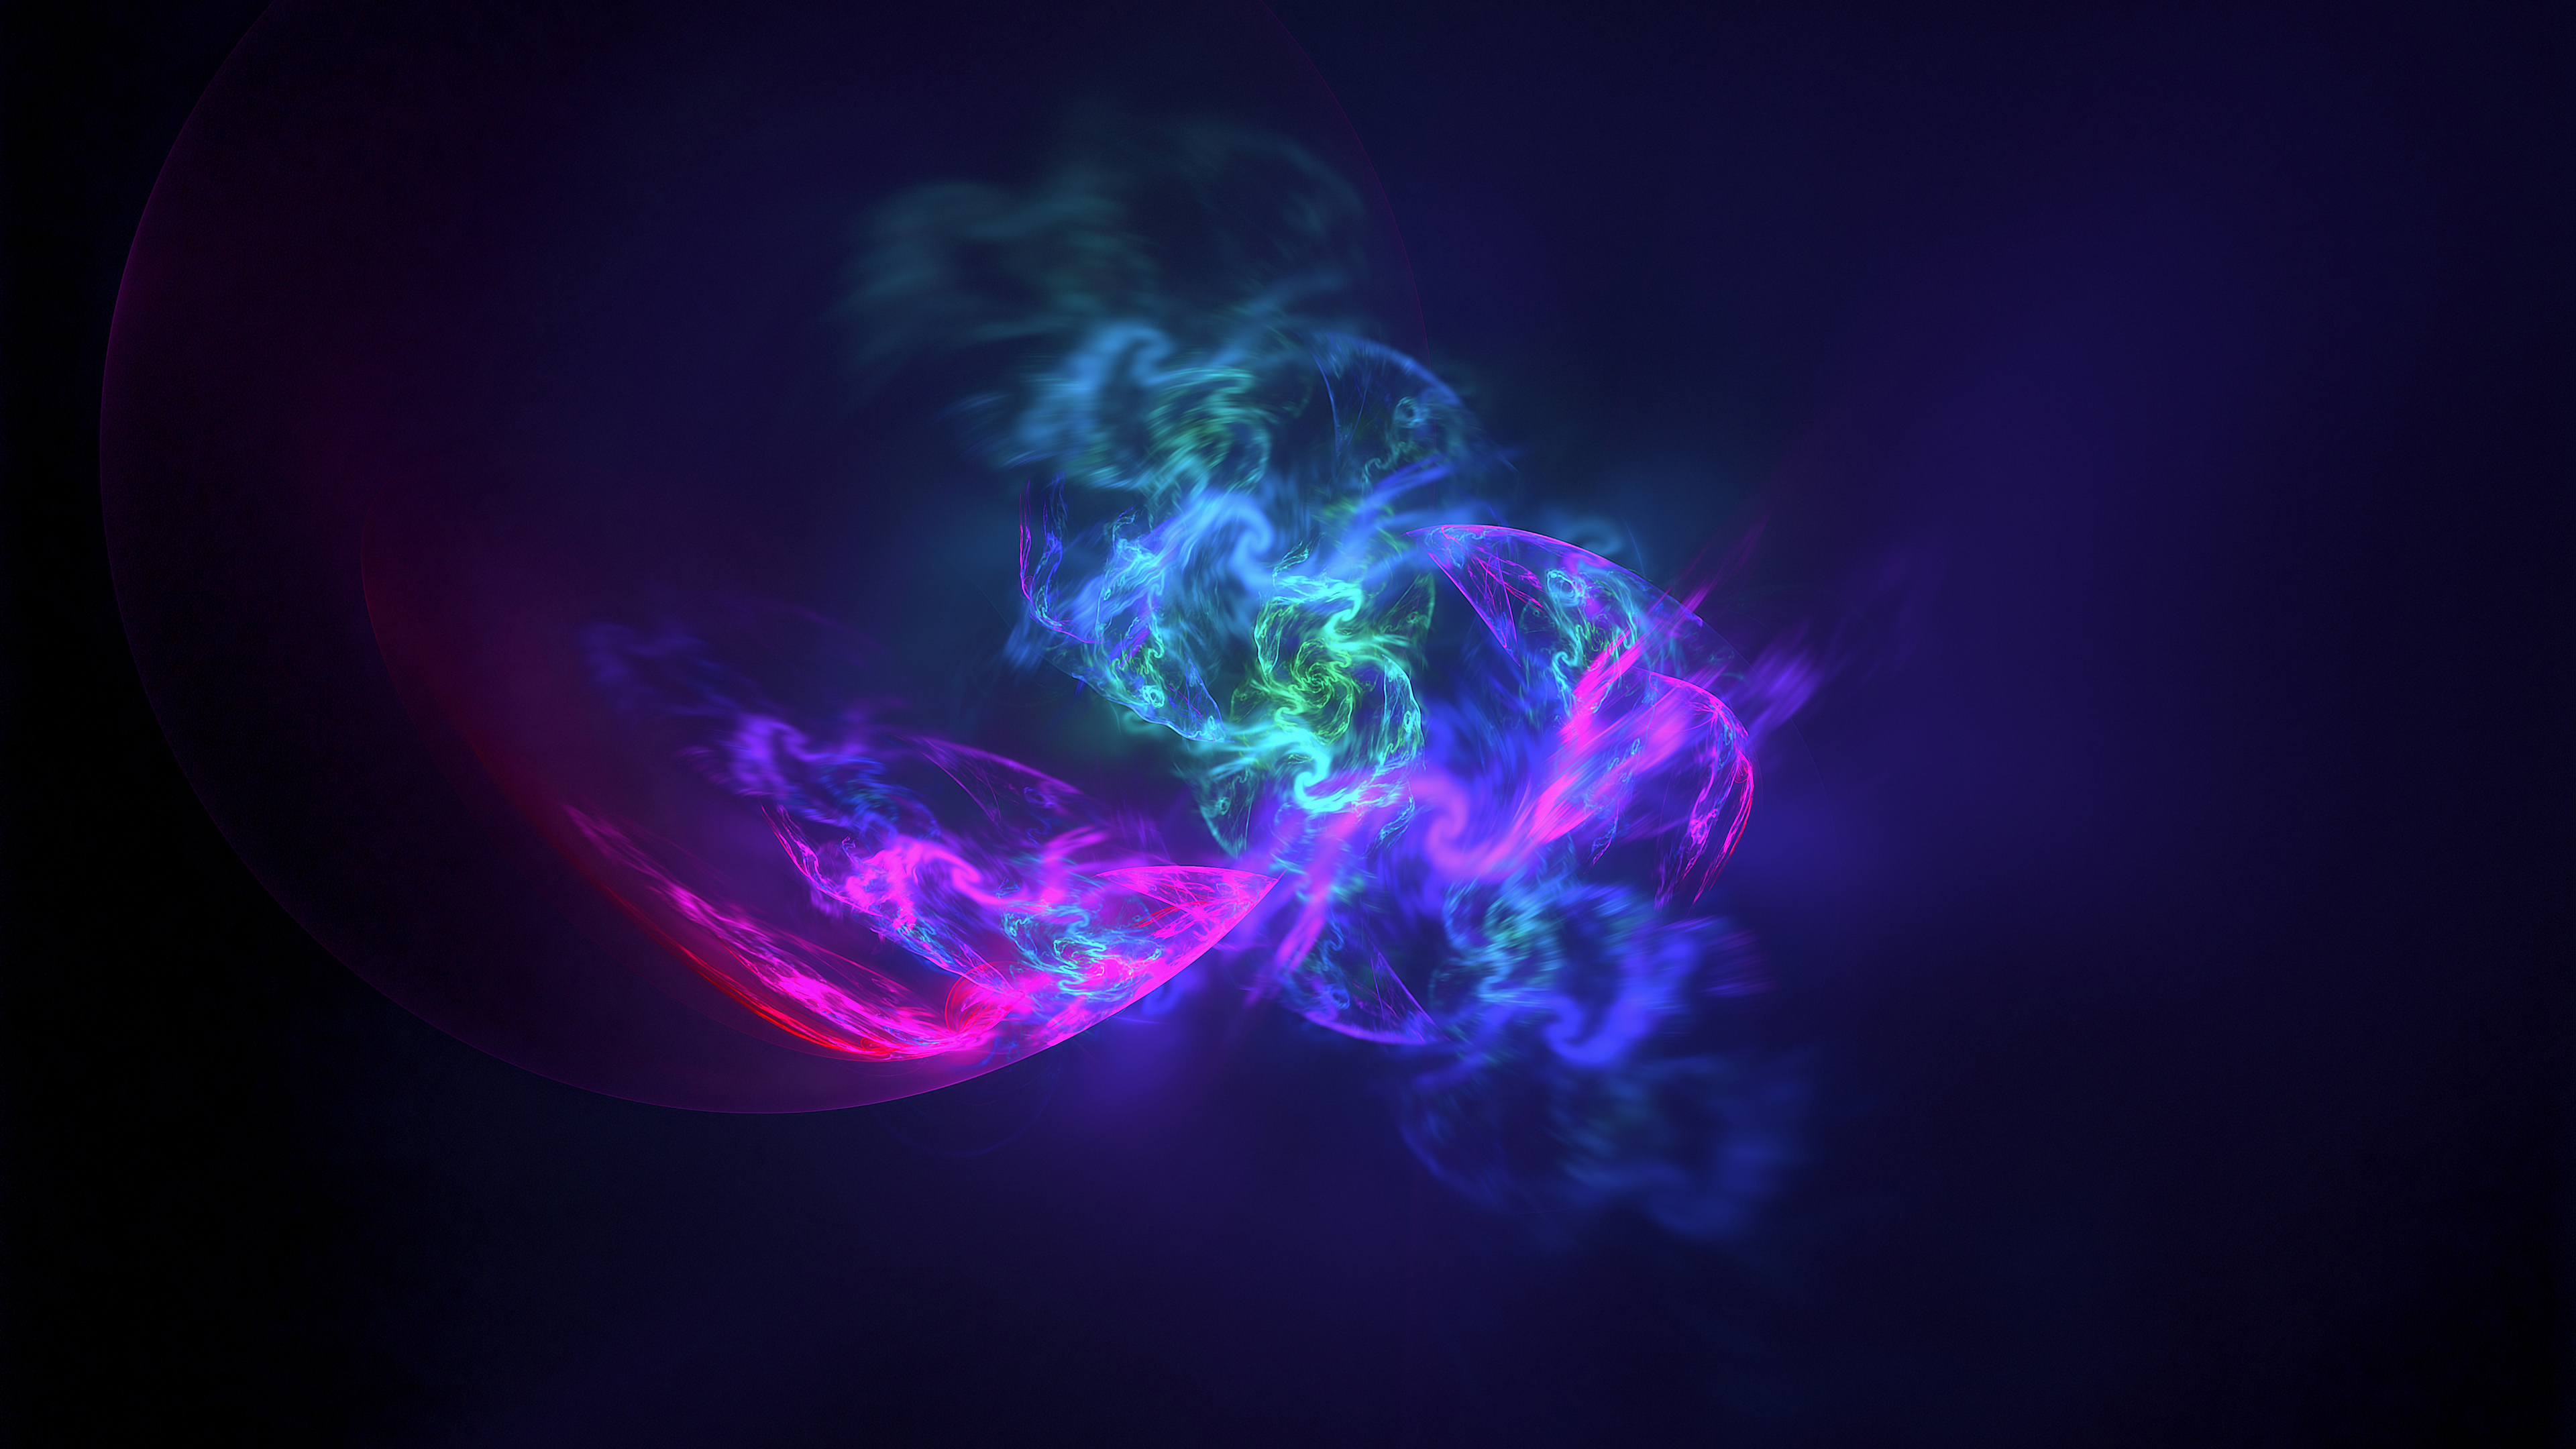 color explosion 1563221439 - Color Explosion - hd-wallpapers, explosion wallpapers, abstract wallpapers, 4k-wallpapers